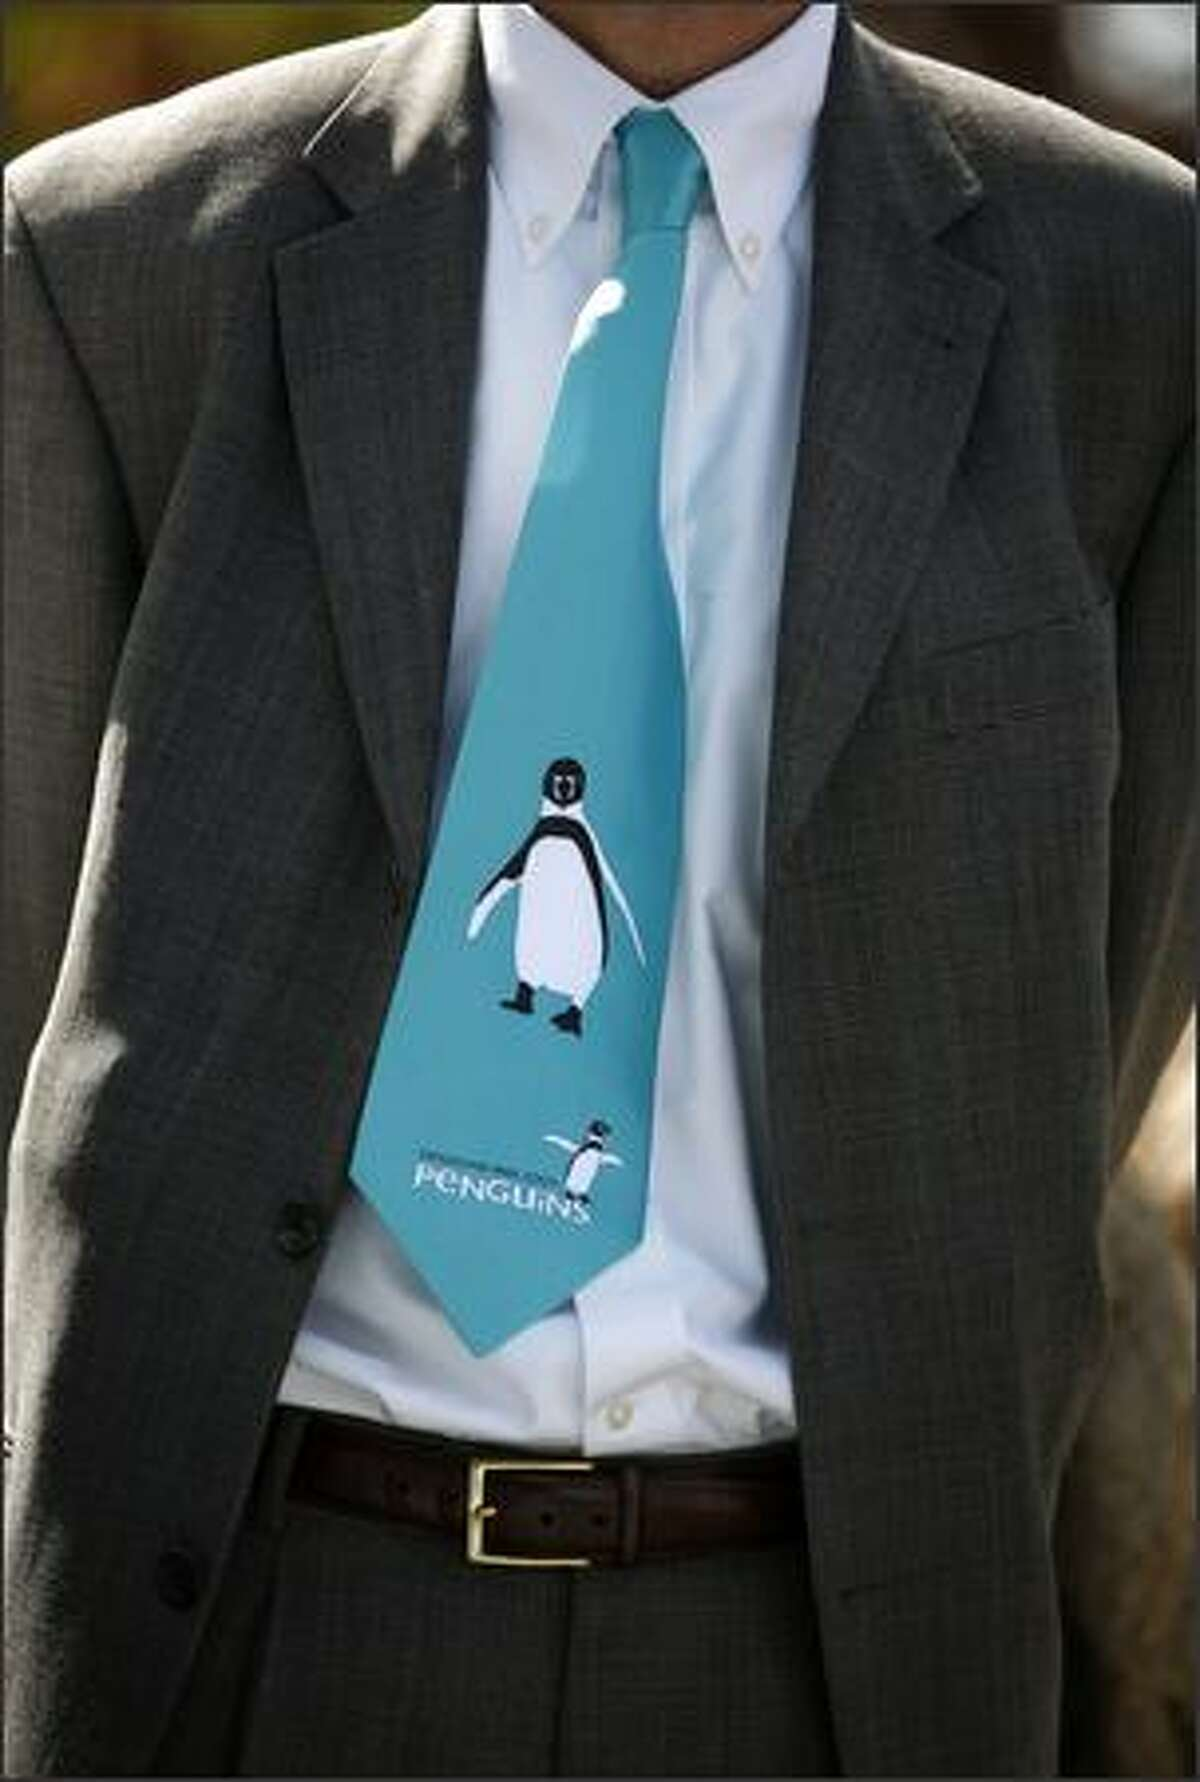 A visitor to the Humboldt penguins exhibit sports an appropriate neck tie on Friday at the Woodland Park Zoo in Seattle.